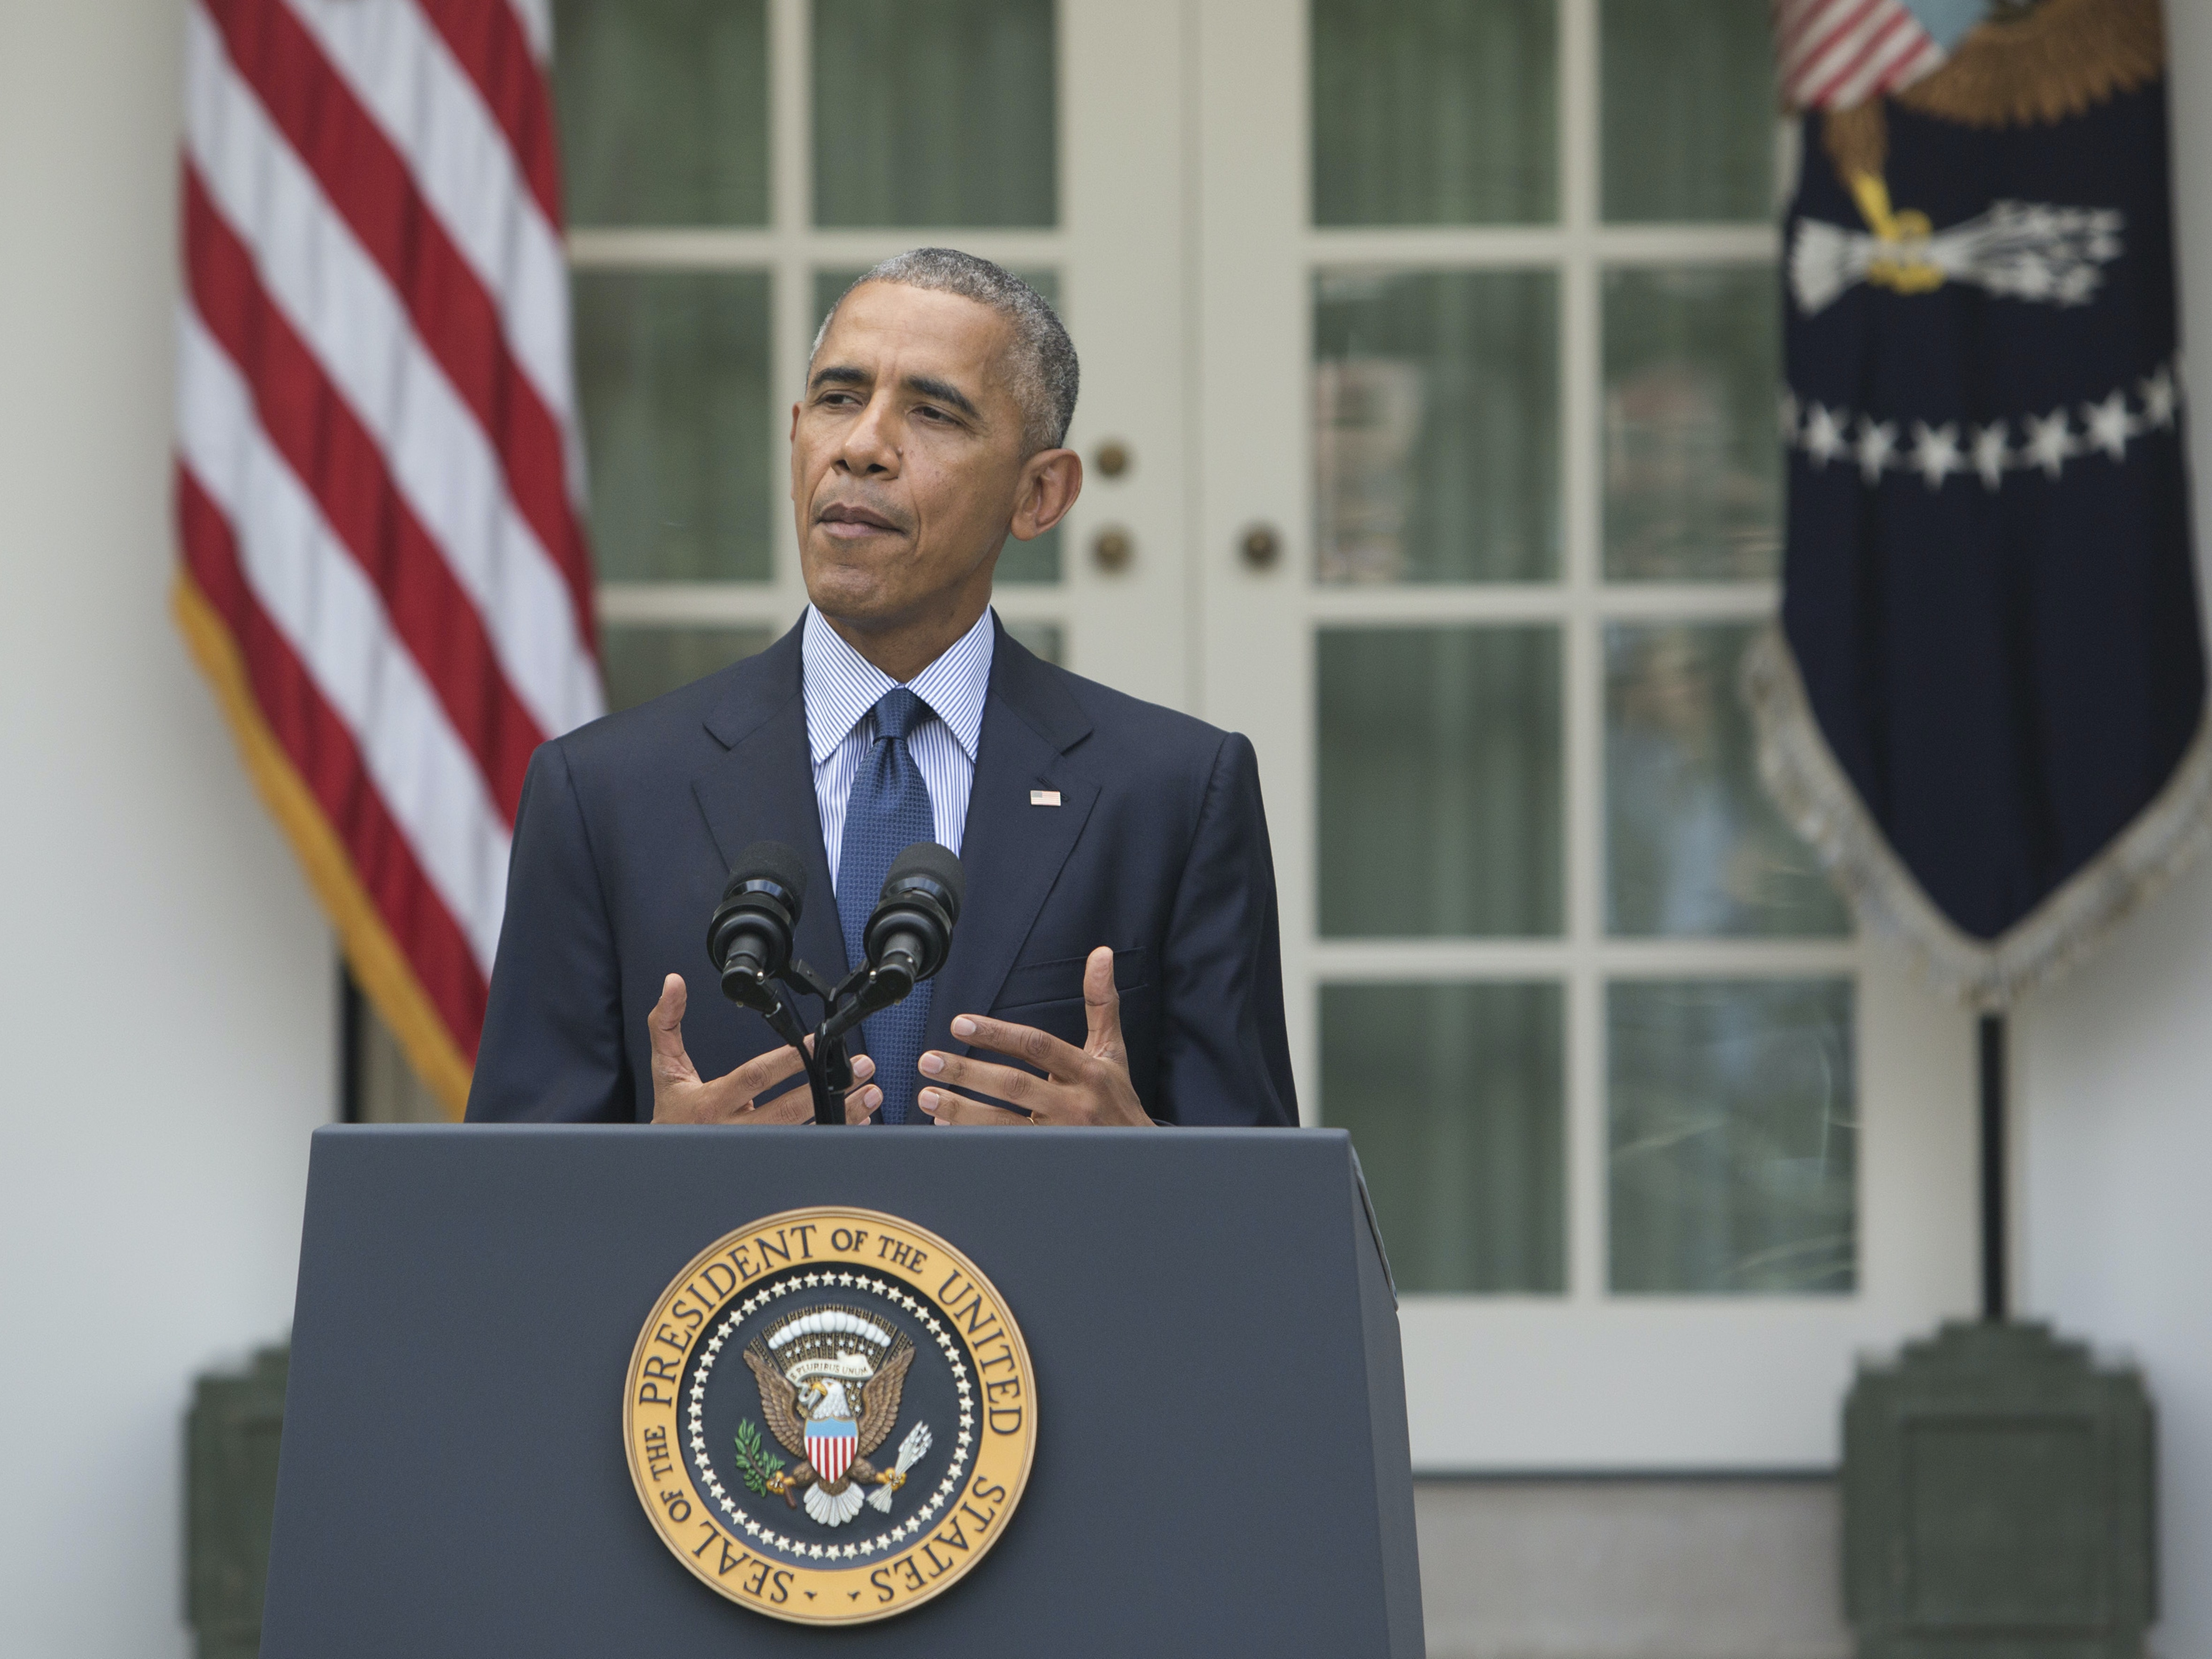 WASHINGTON, DC - OCTOBER 5: U.S. President Barack Obama makes a statement on the Paris Agreement at The White House October 5, 2016 in Washington D.C. The Paris Agreement is an international accord aimed at substantially decreasing greehouse gas emissions and global warming. (Photo by Chris Kleponis-Pool/Getty Images)